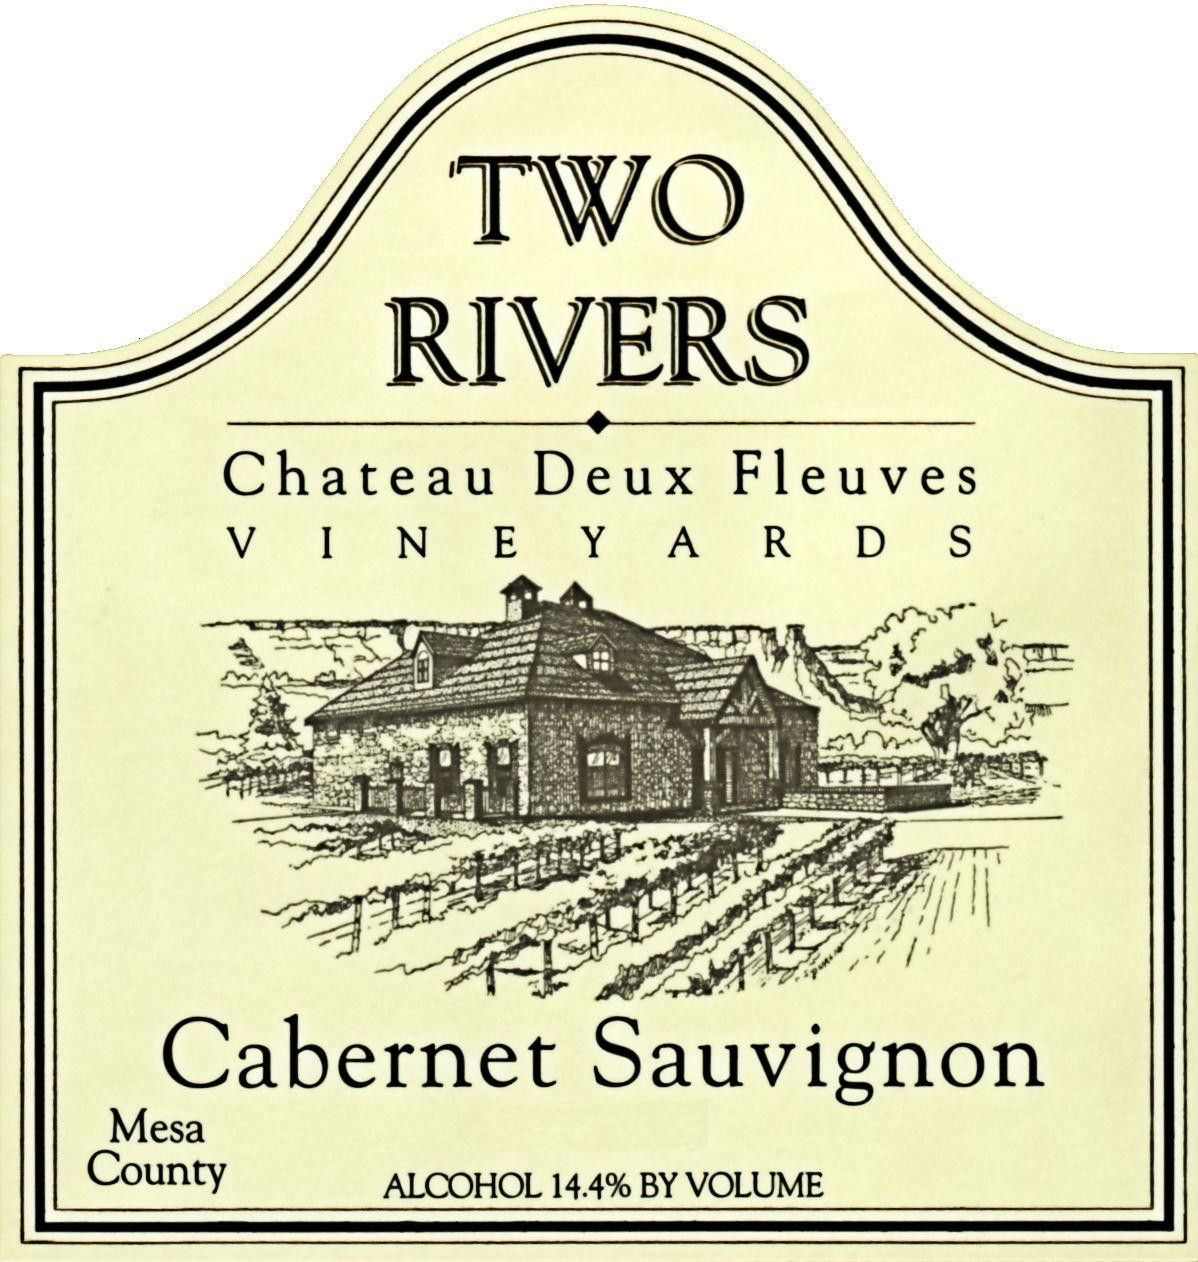 Two Rivers Winery and Chateau Mesa County Deux Fleuves Vineyards Cabernet Sauvignon 2012 Front Label